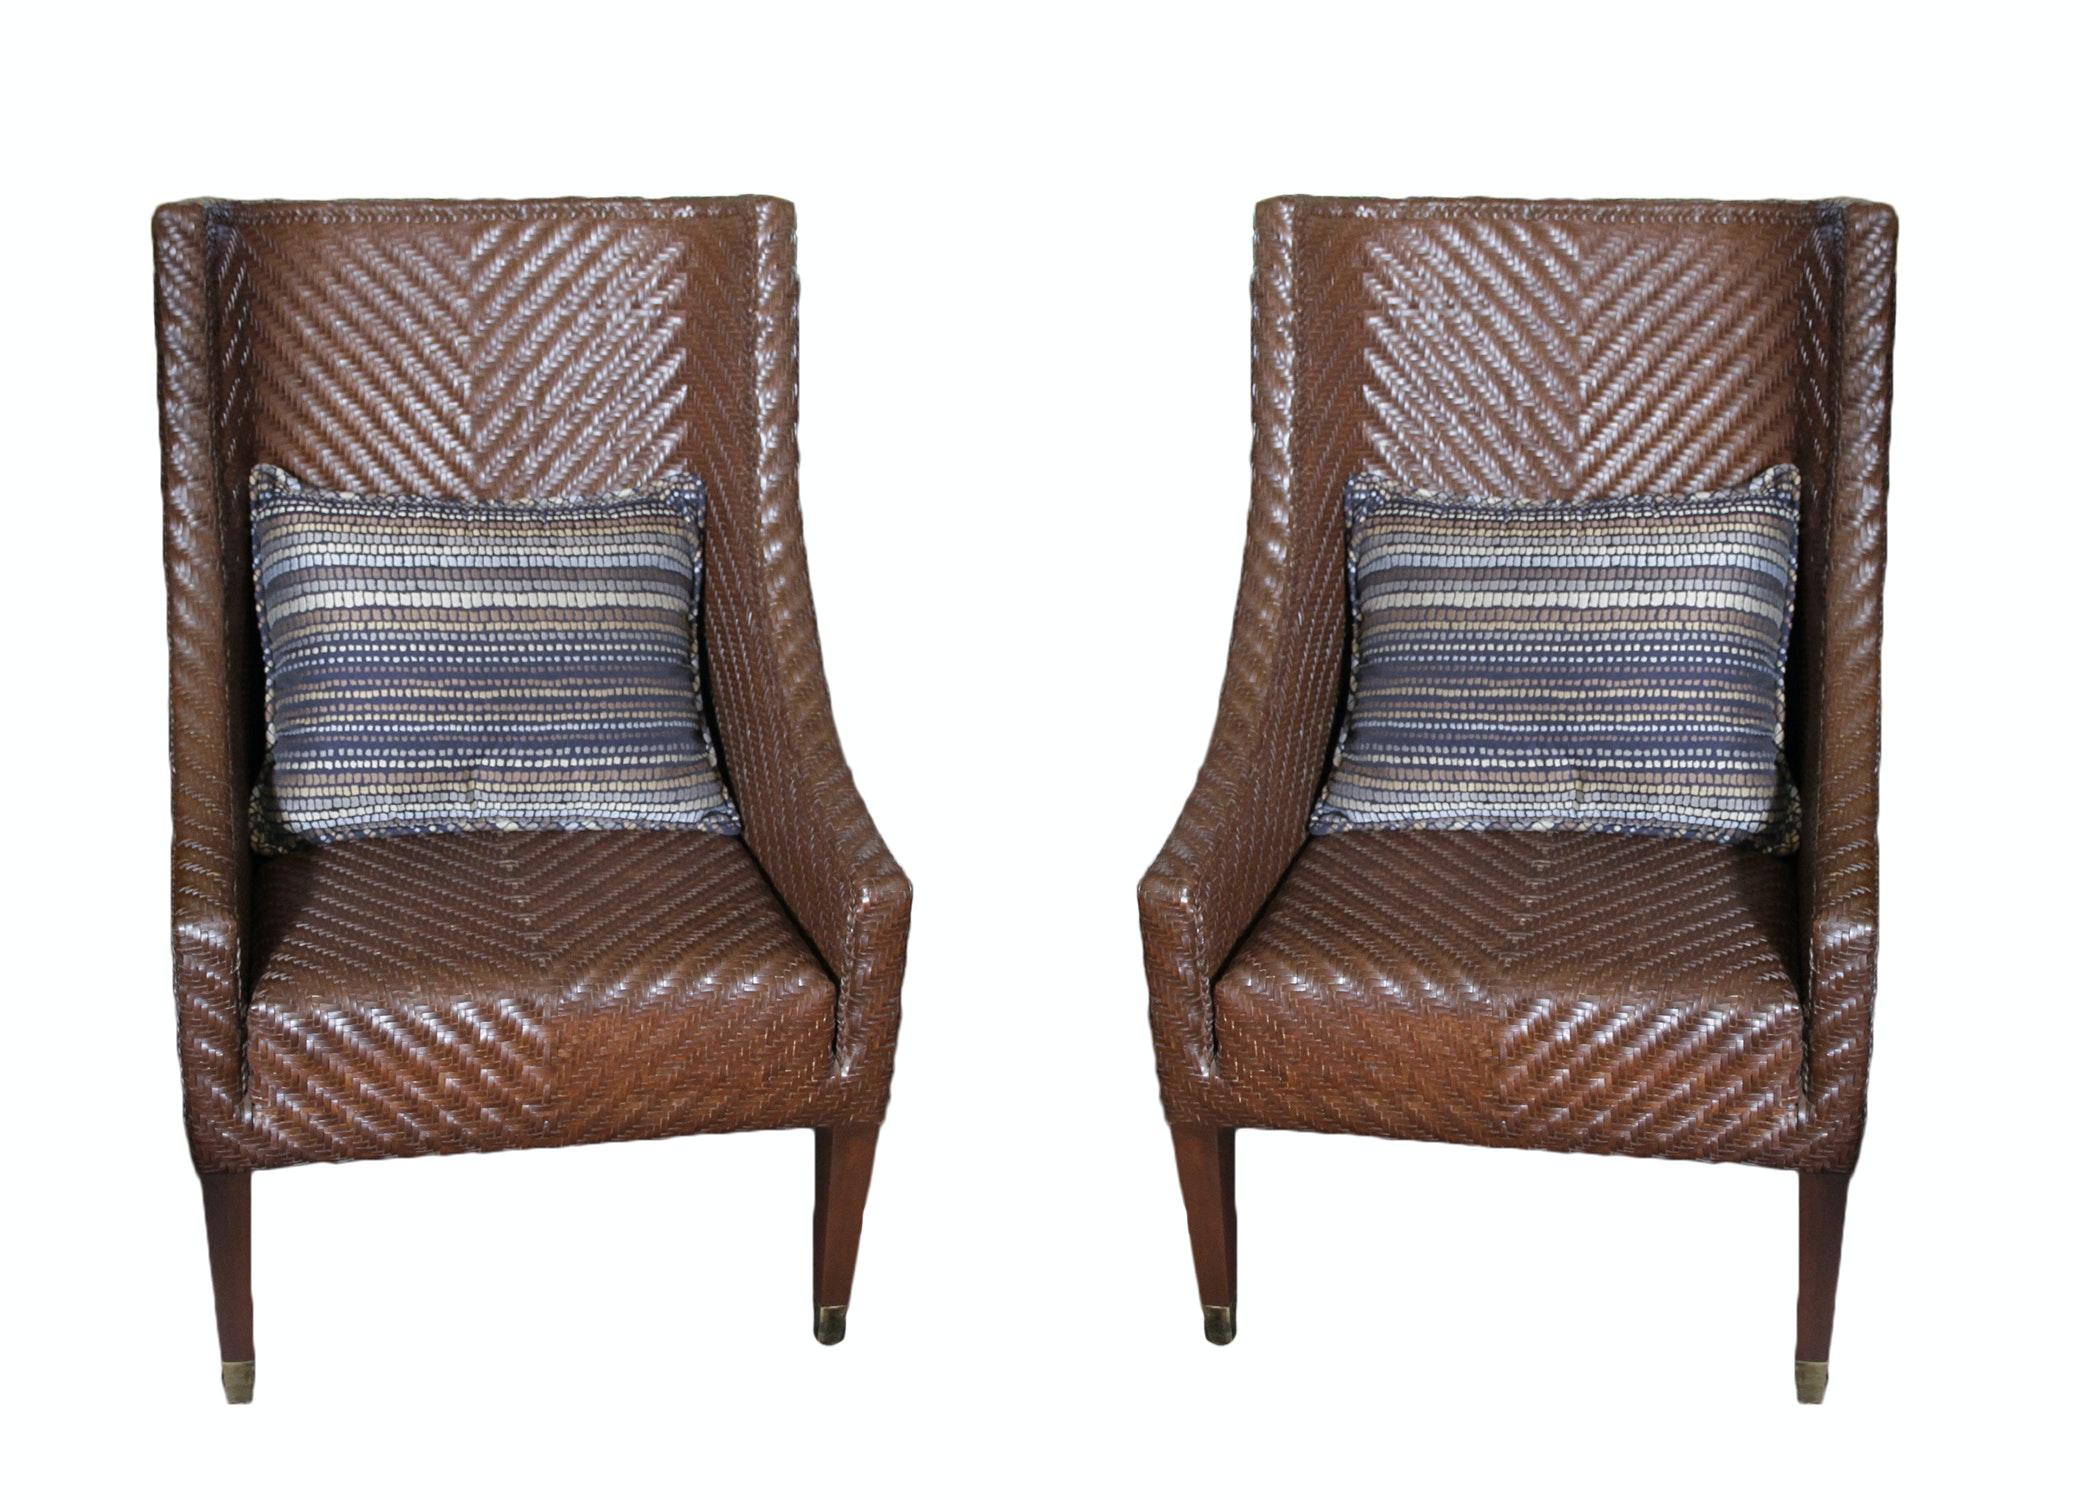 Pair Of Woven Leather Chairs ...